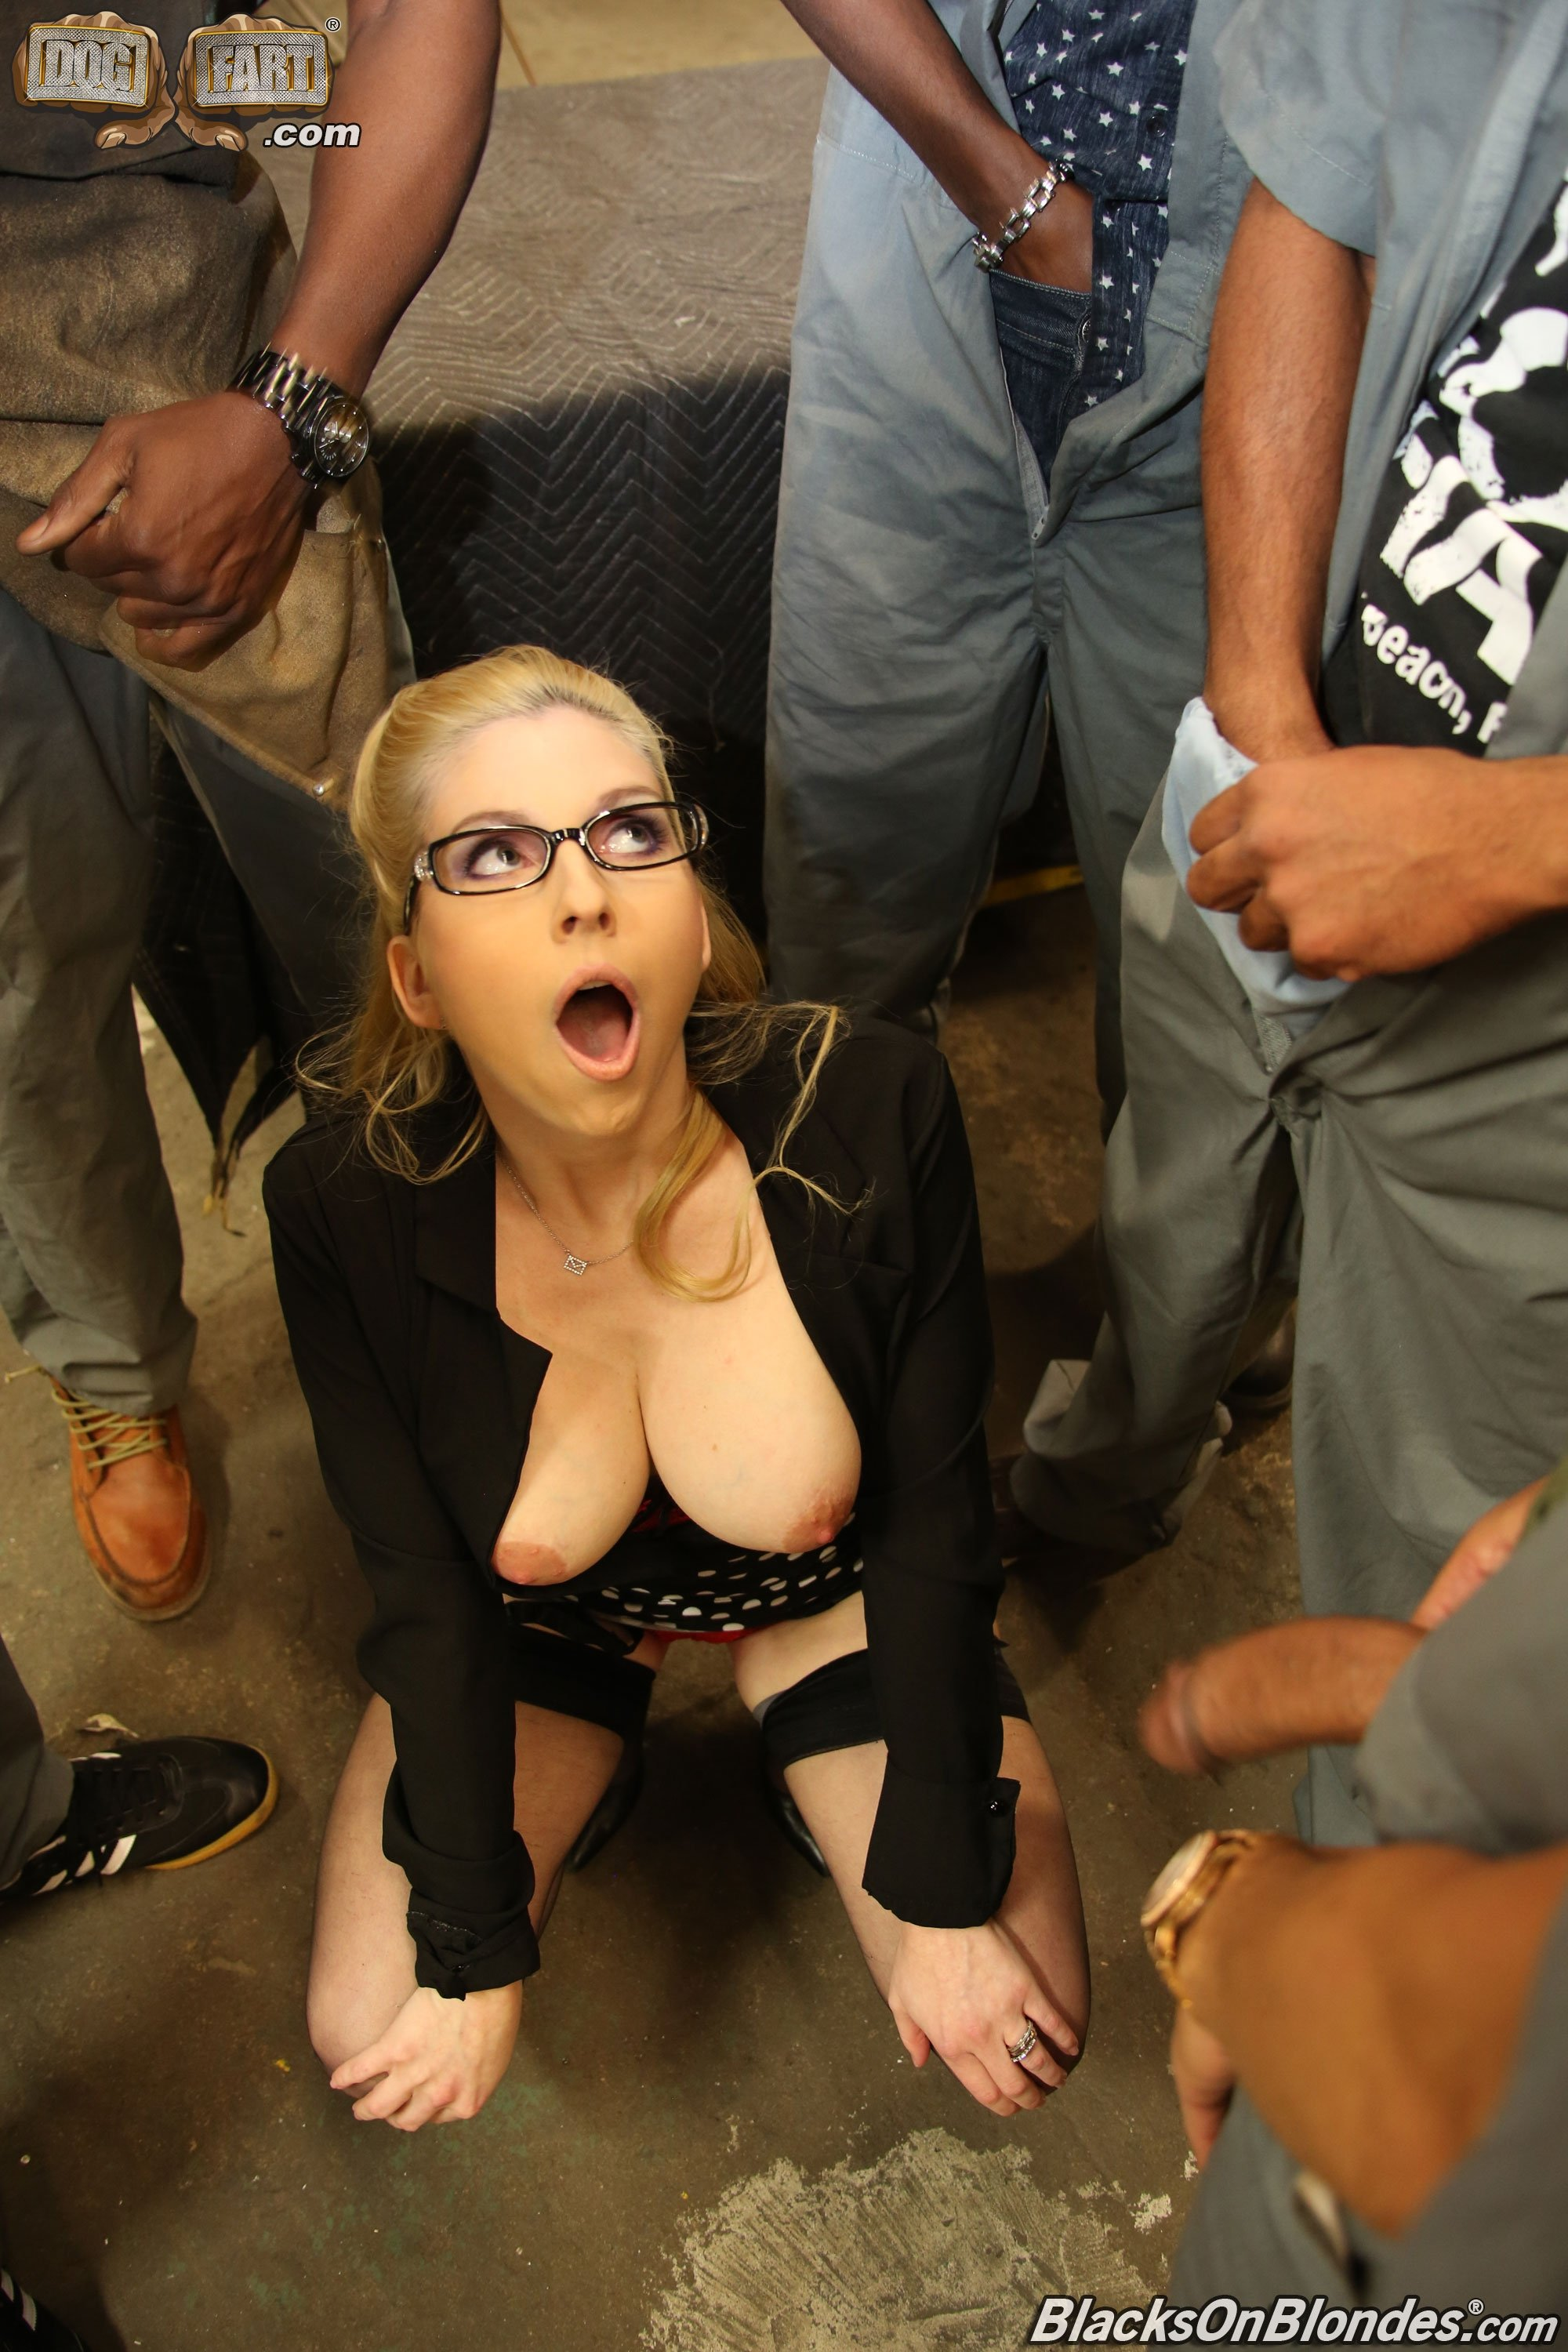 Gallery porn secretary fantastic, big